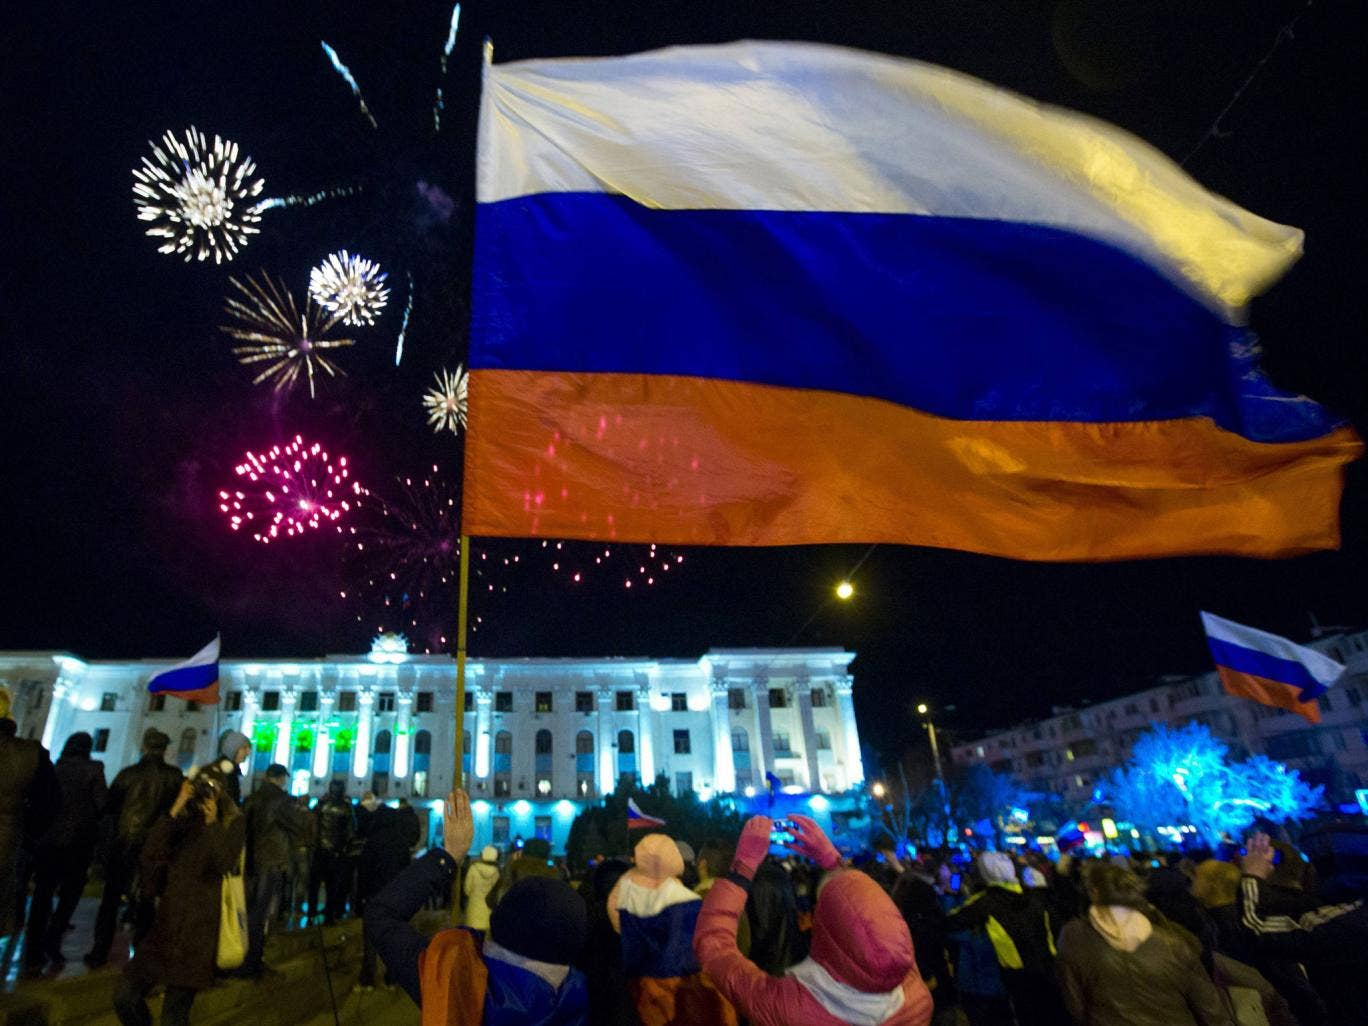 People watch fireworks and wave Russian flags during celebrations after the preliminary results of today's referendum are announced on Lenin Square in the Crimean capital of Simferopol